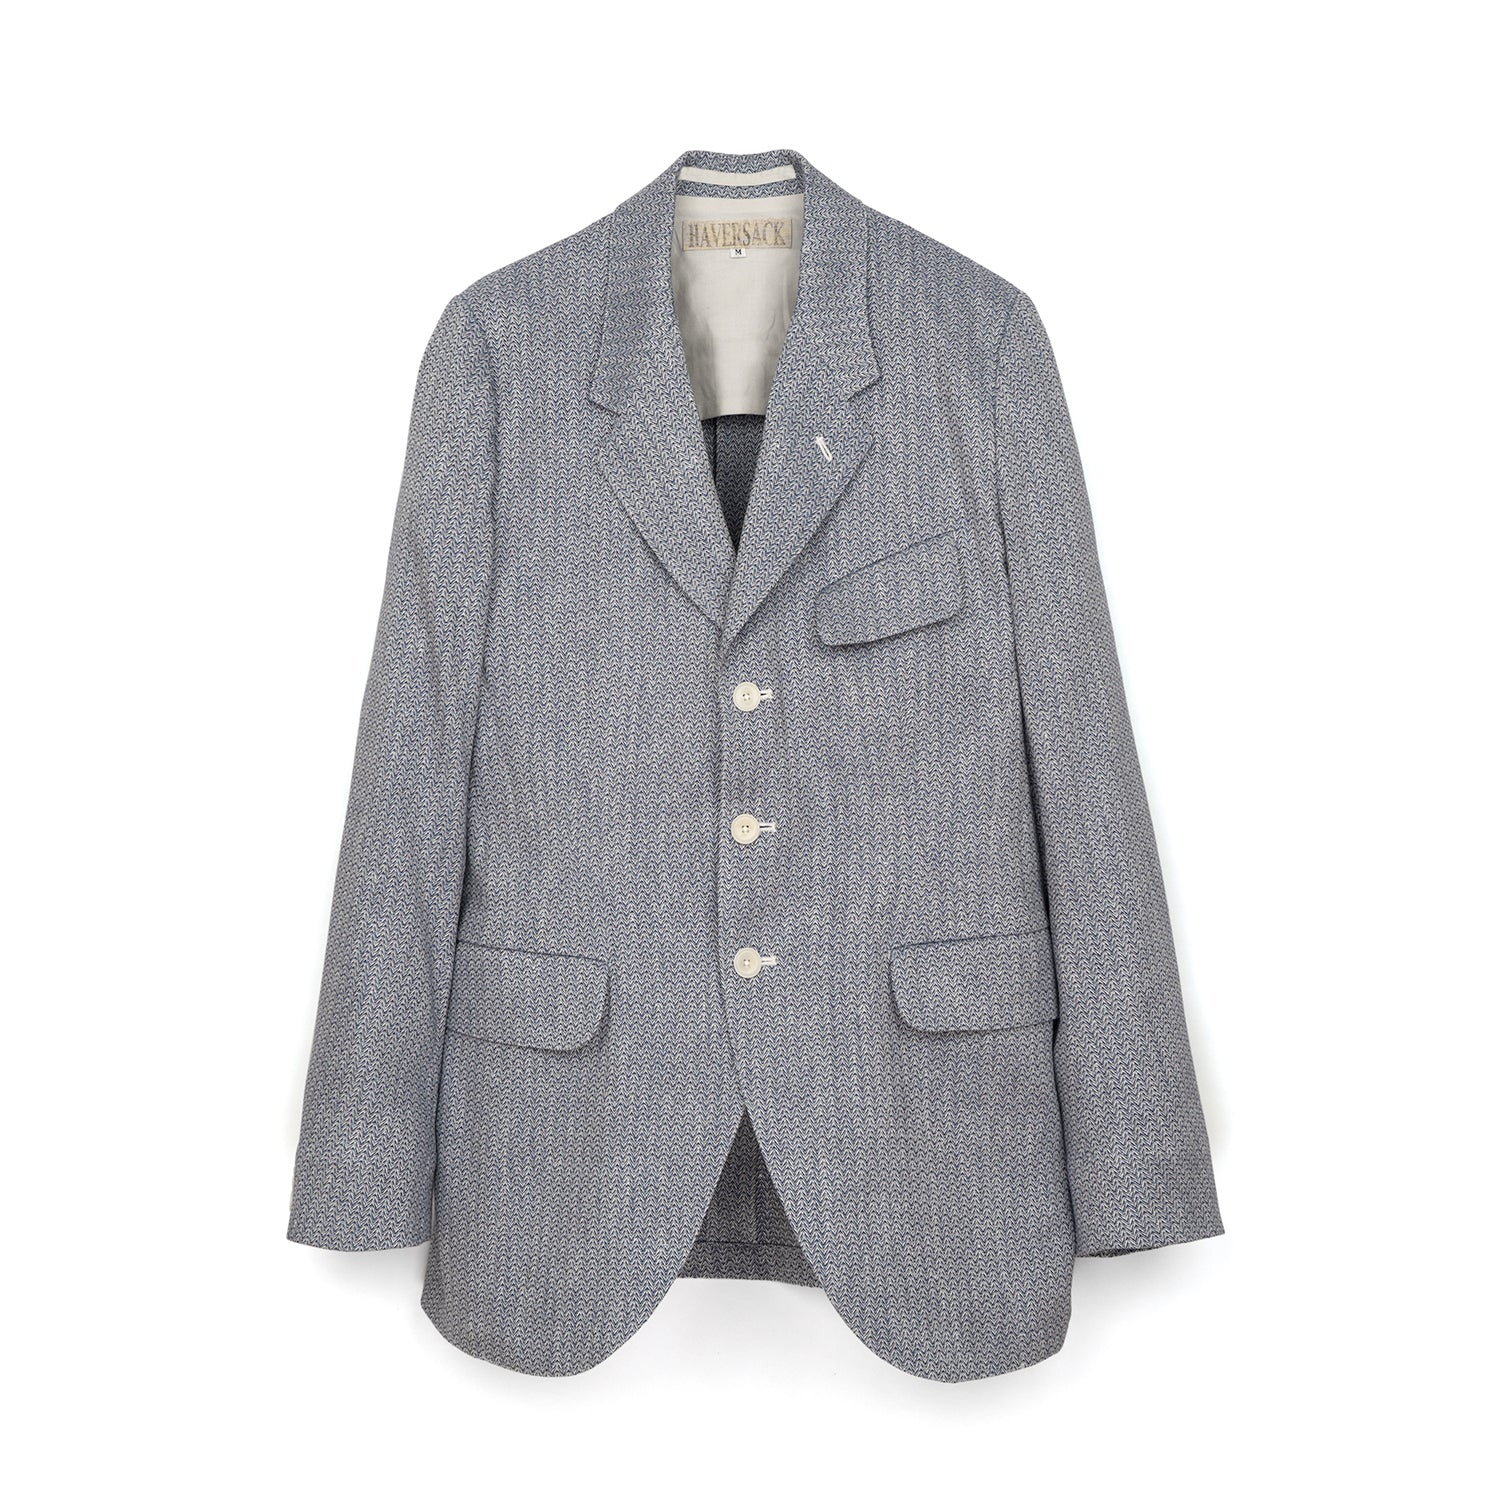 Haversack Herringbone Jacket 871823/55